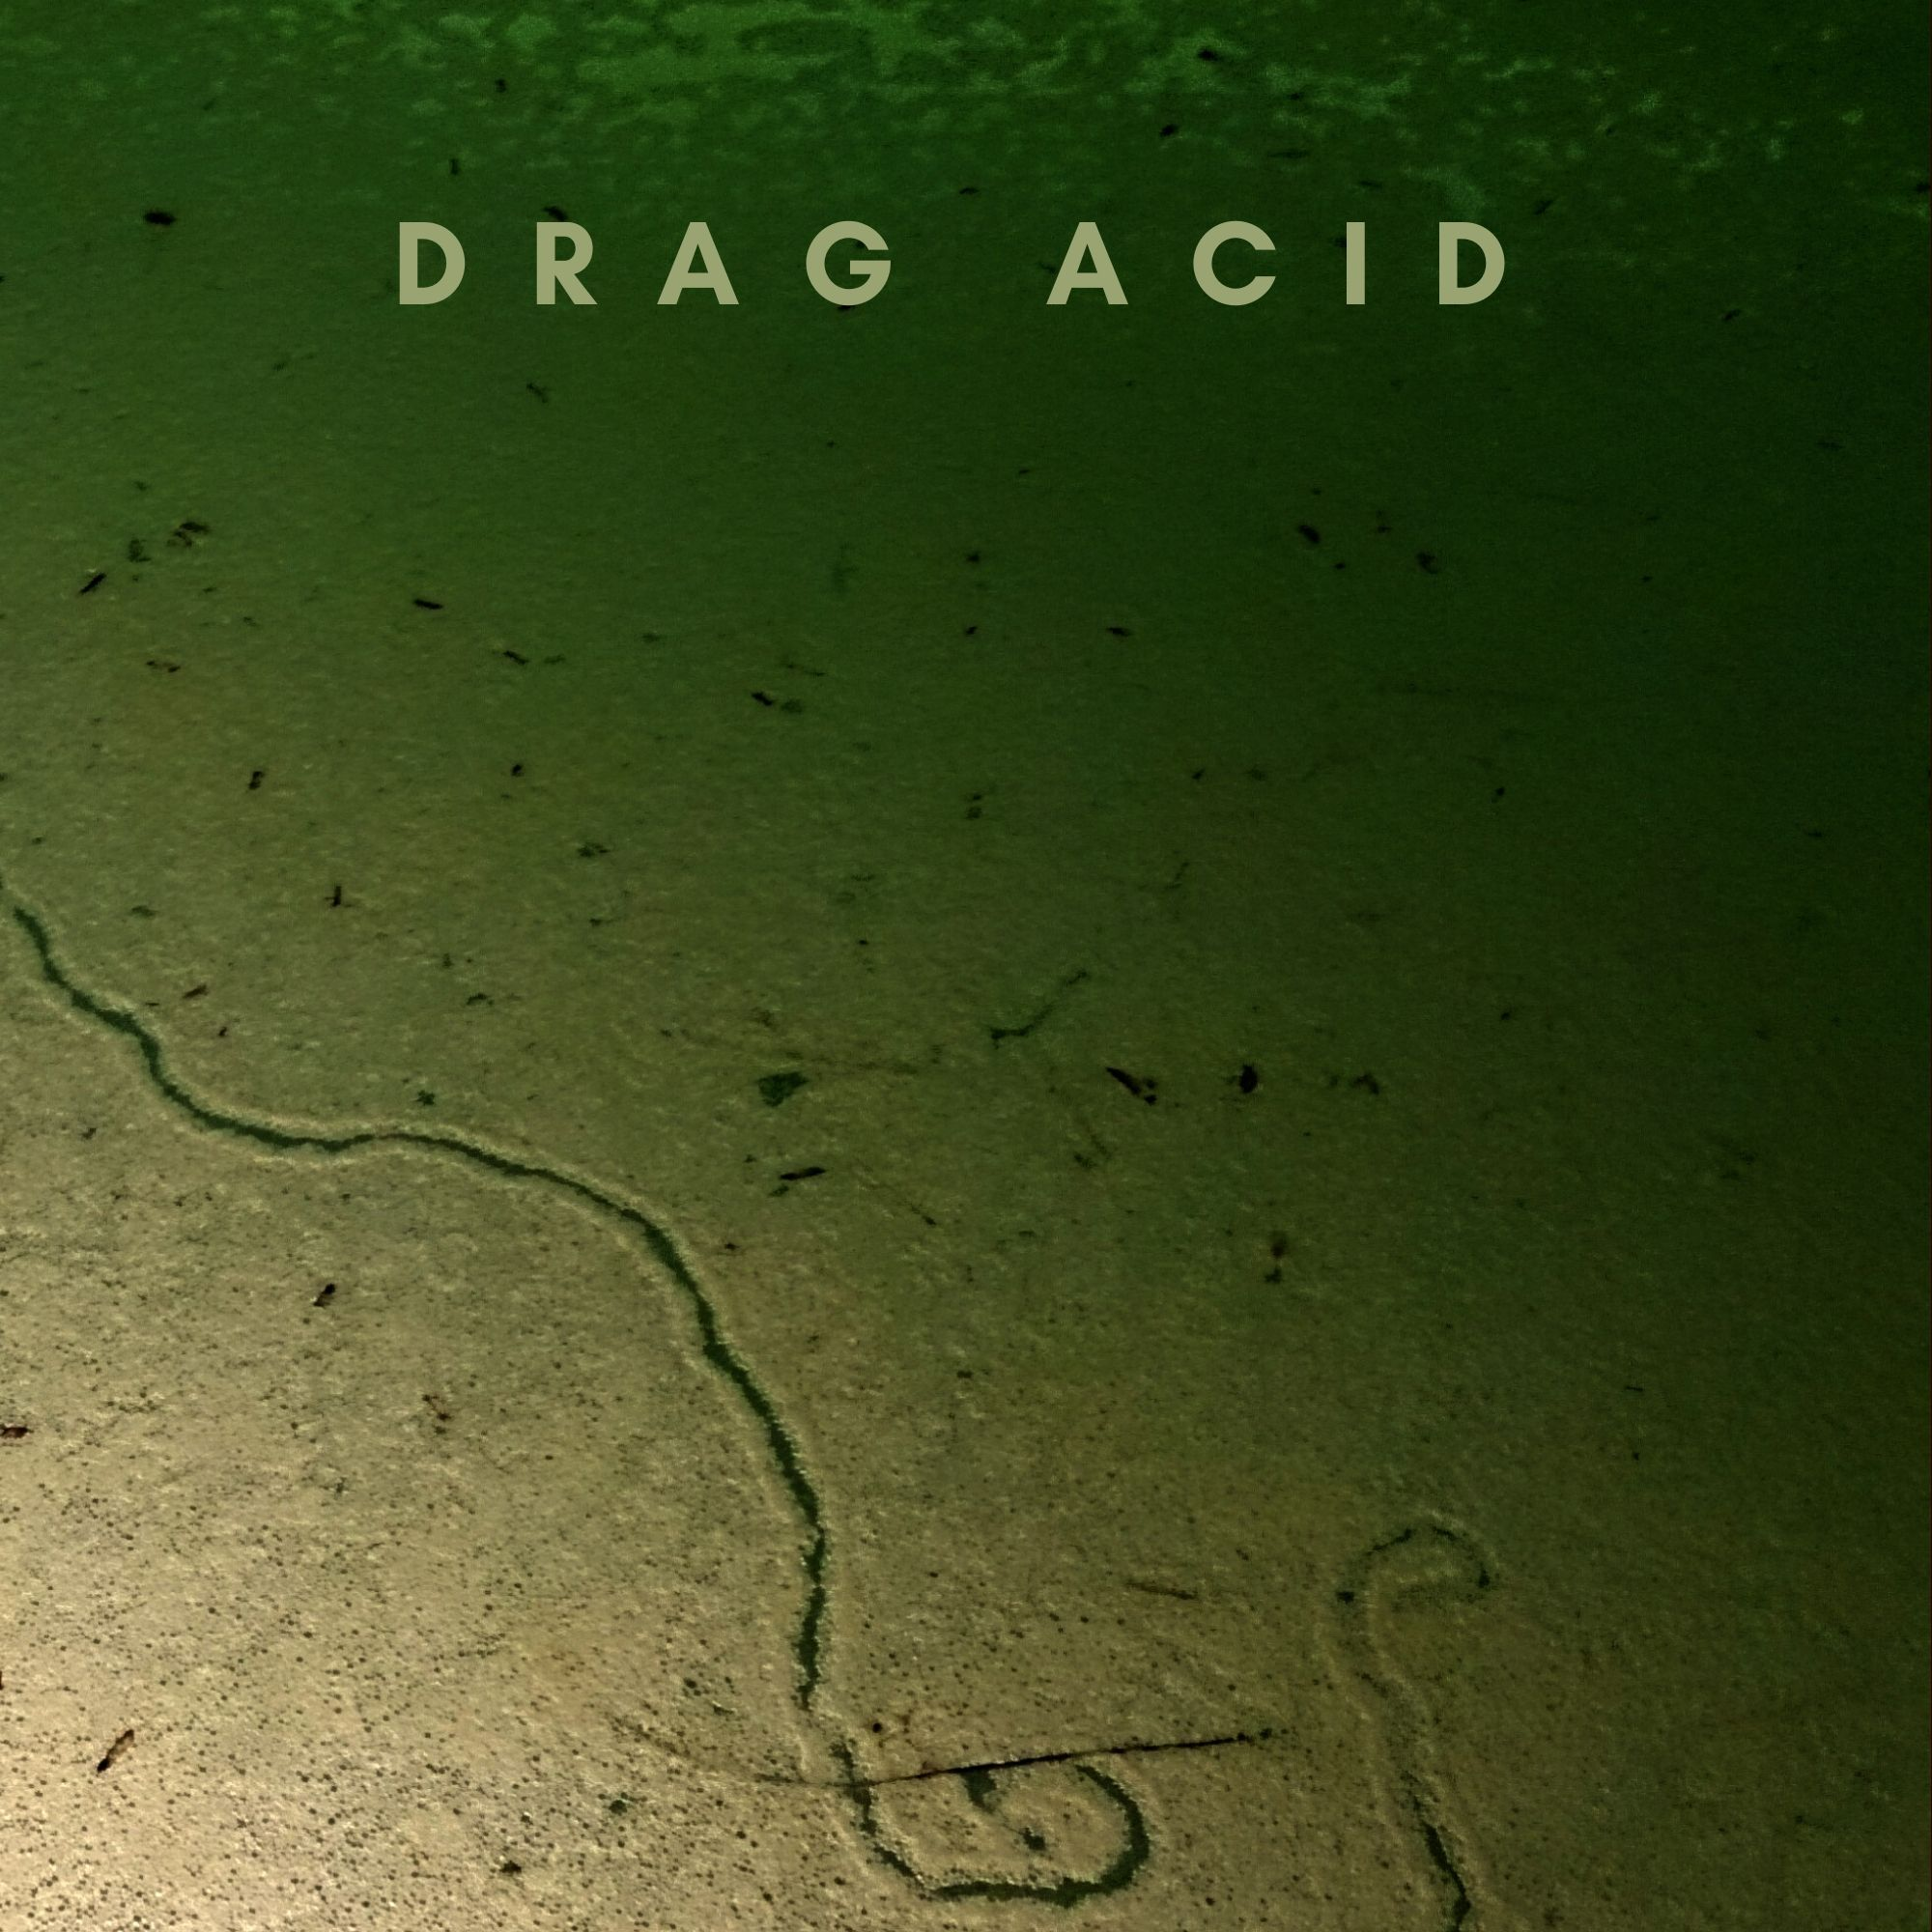 DRAG ACID # 3  by Wildernish (Conor McMahon)